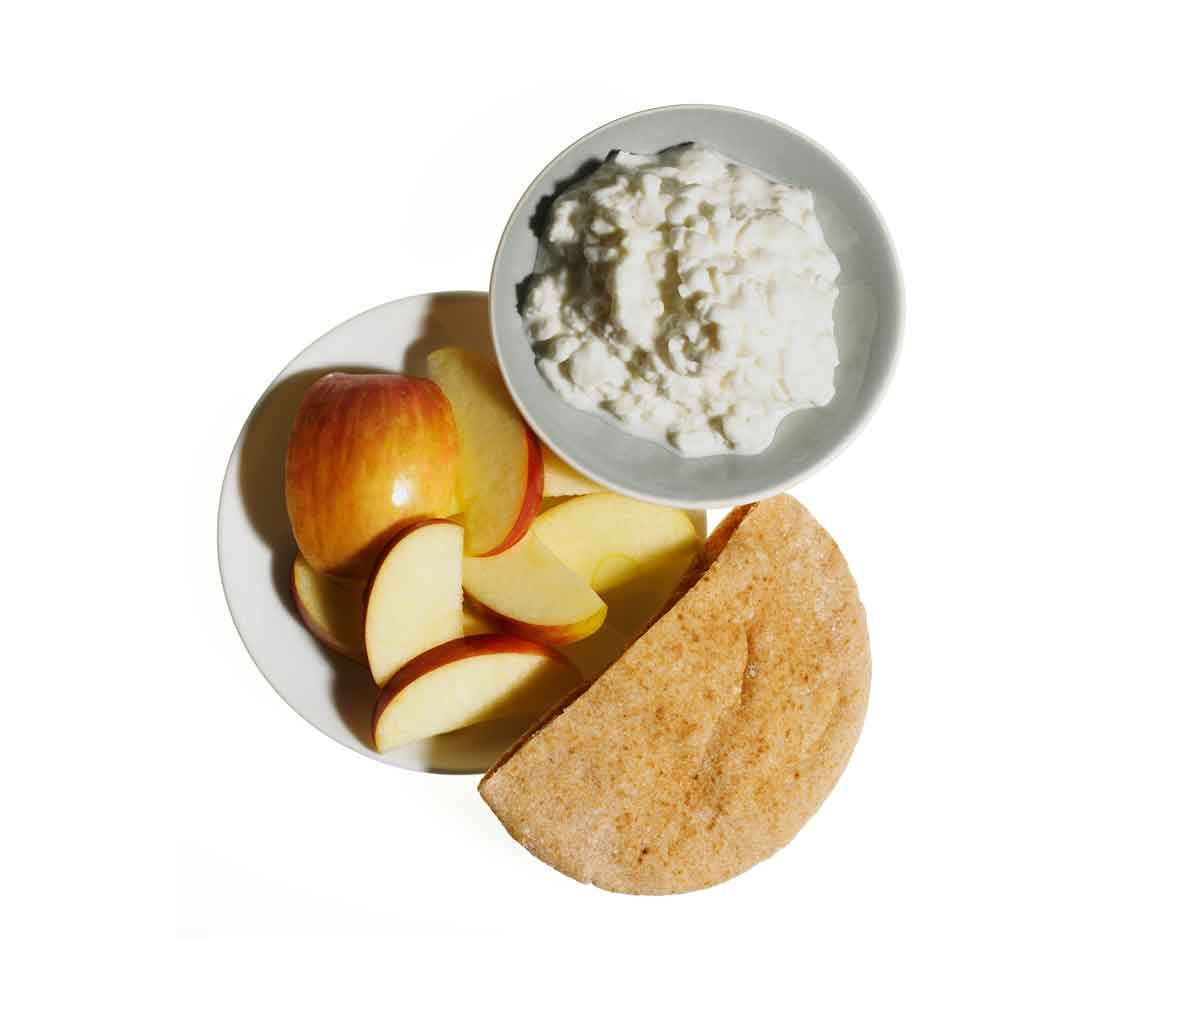 Before you hit the gym for an am workout, power up with one of these 8 high-energy foods.